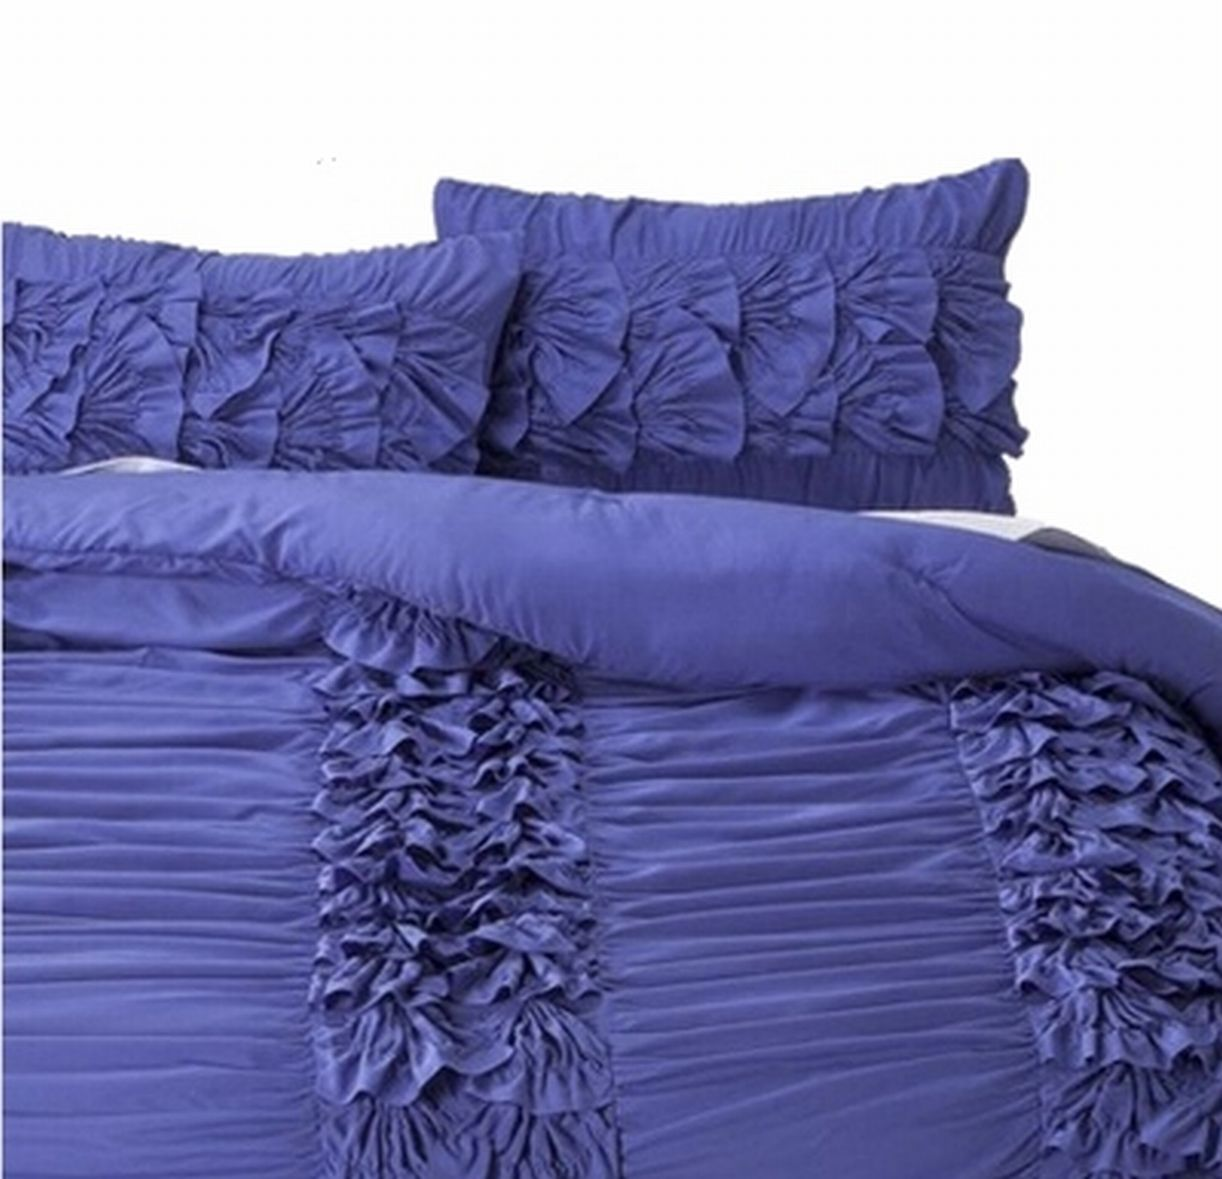 Twin XL Purple Violet Layered Ruffle Comforter & Sham Set